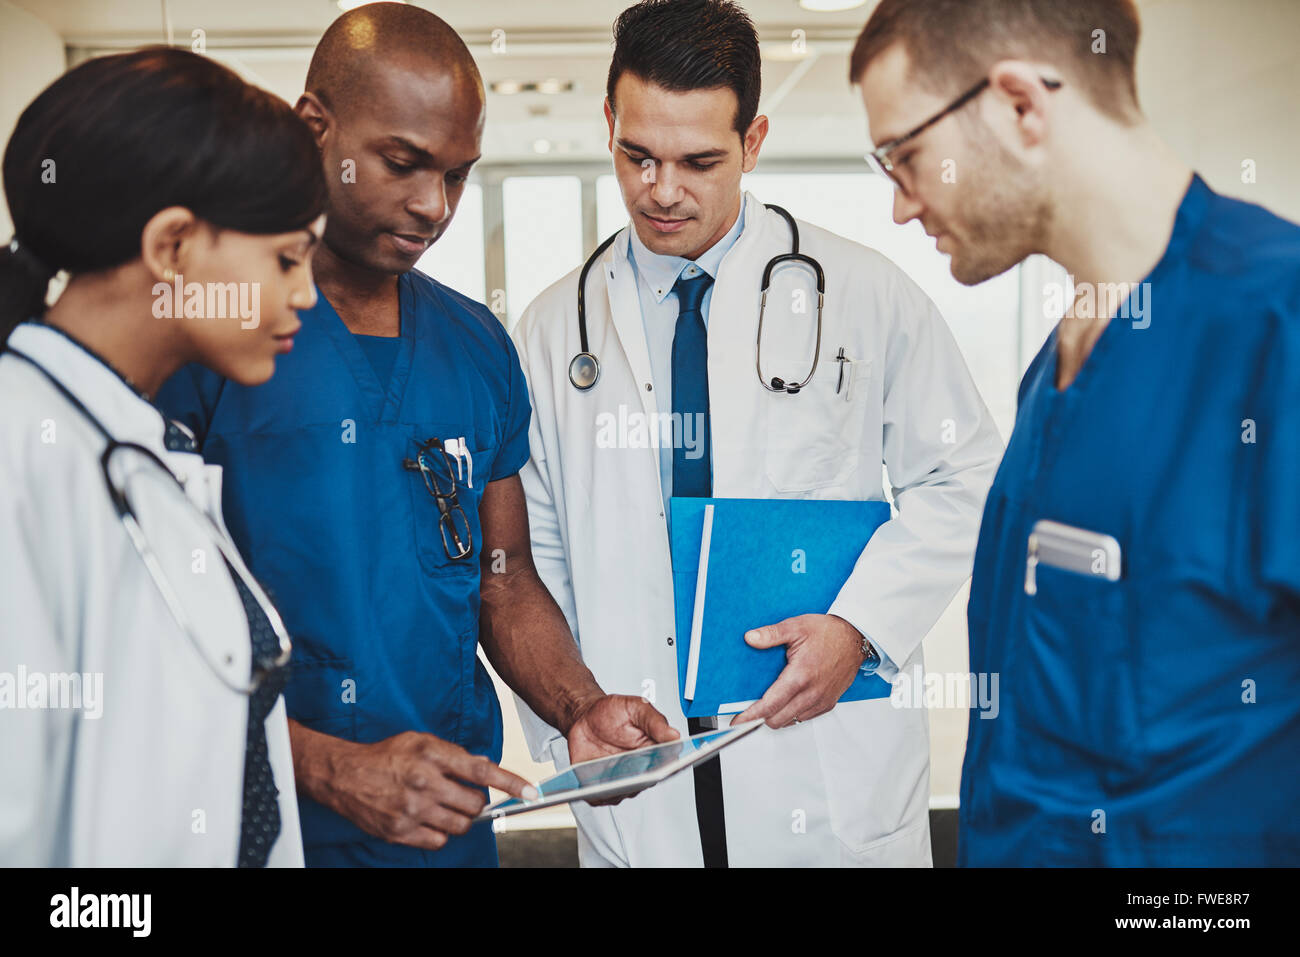 Team of multiracial doctors at hospital discussing a patient, Doctors using tablet - Stock Image